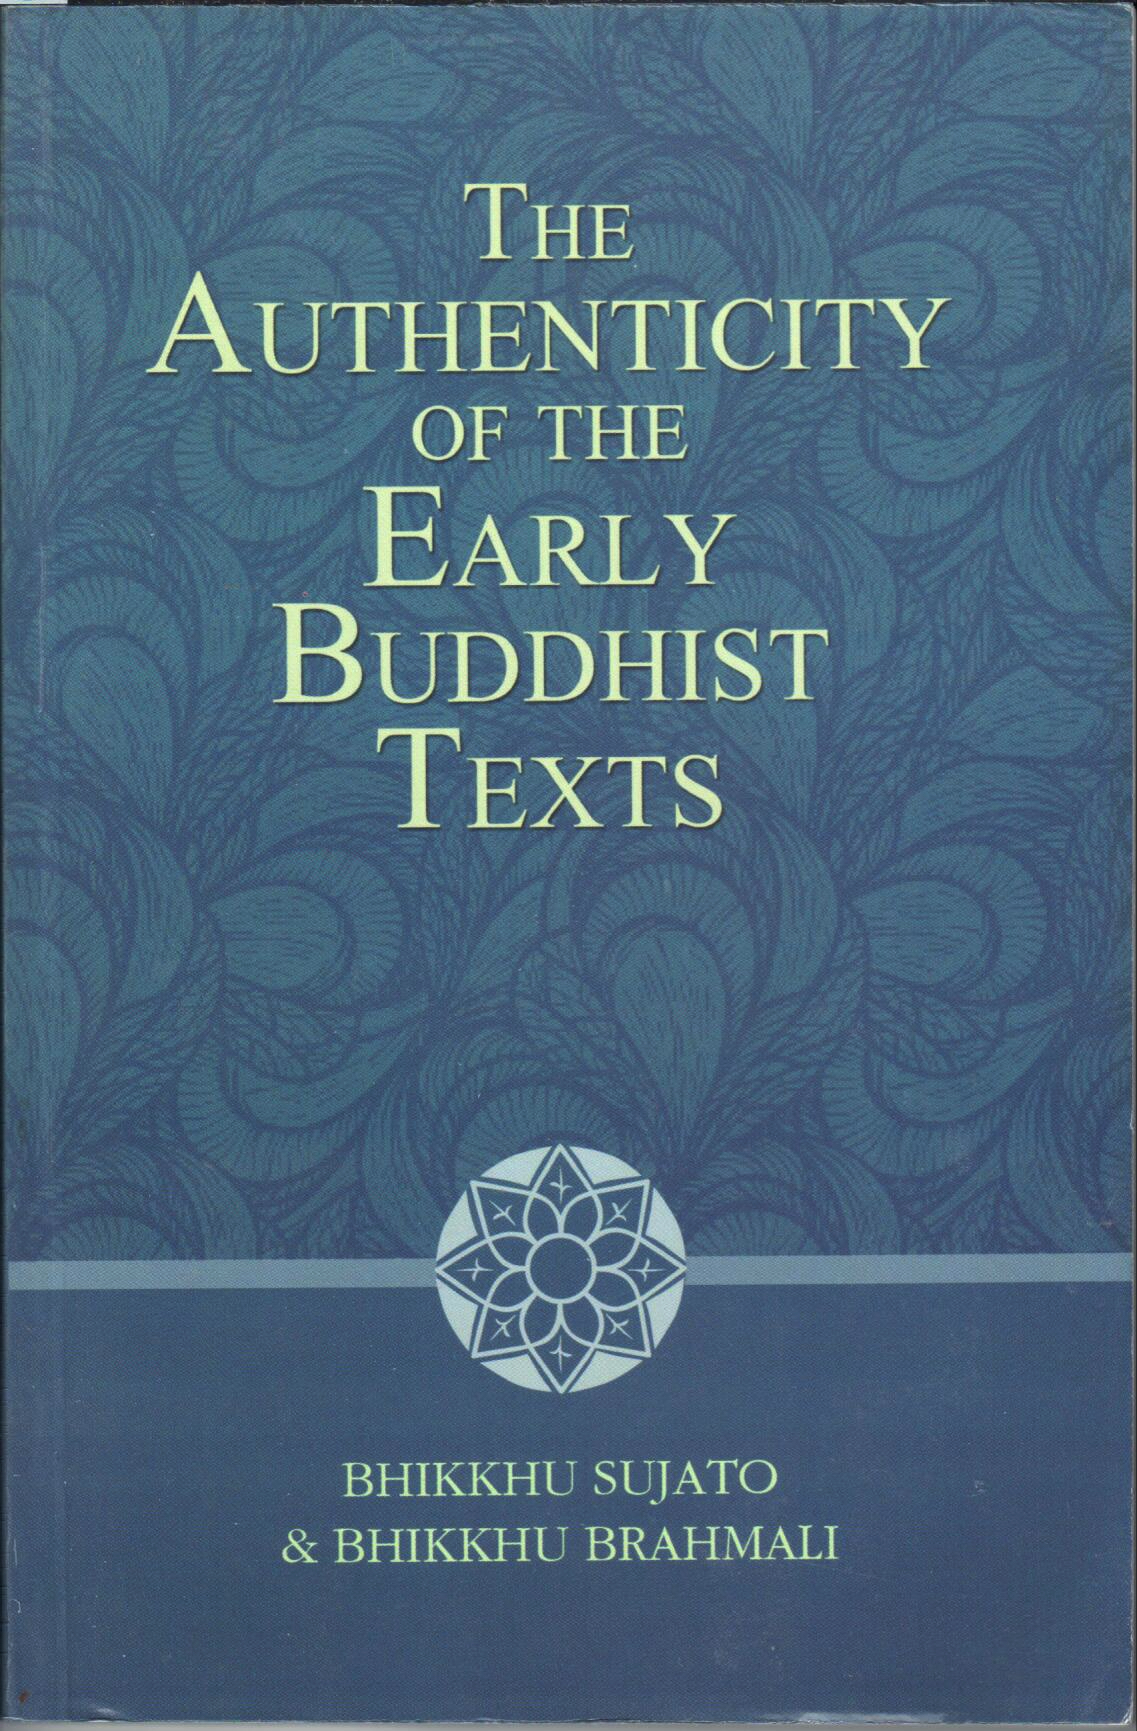 authenticity-of-the-early-buddhist-texts